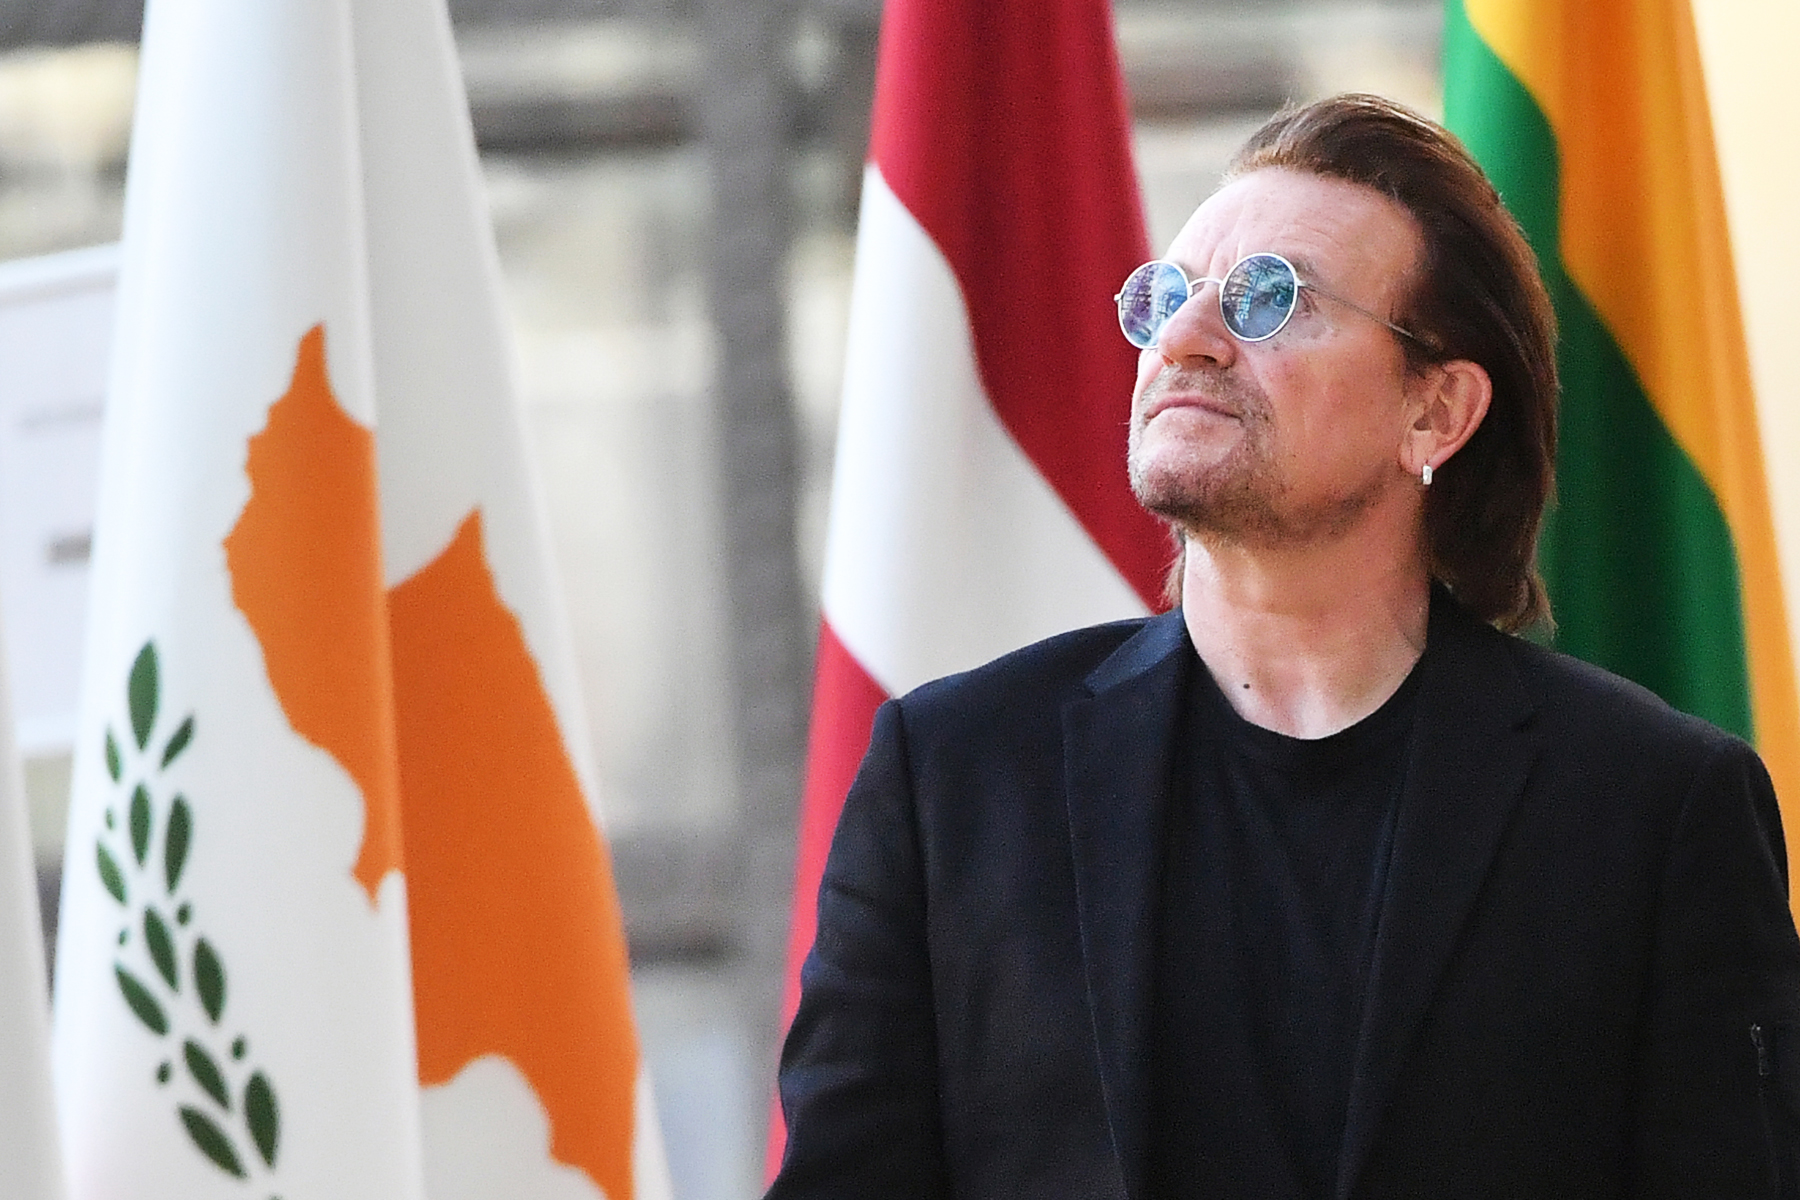 Bono looks up upon his arrival at the European Council in Brussels on October 10, 2018.